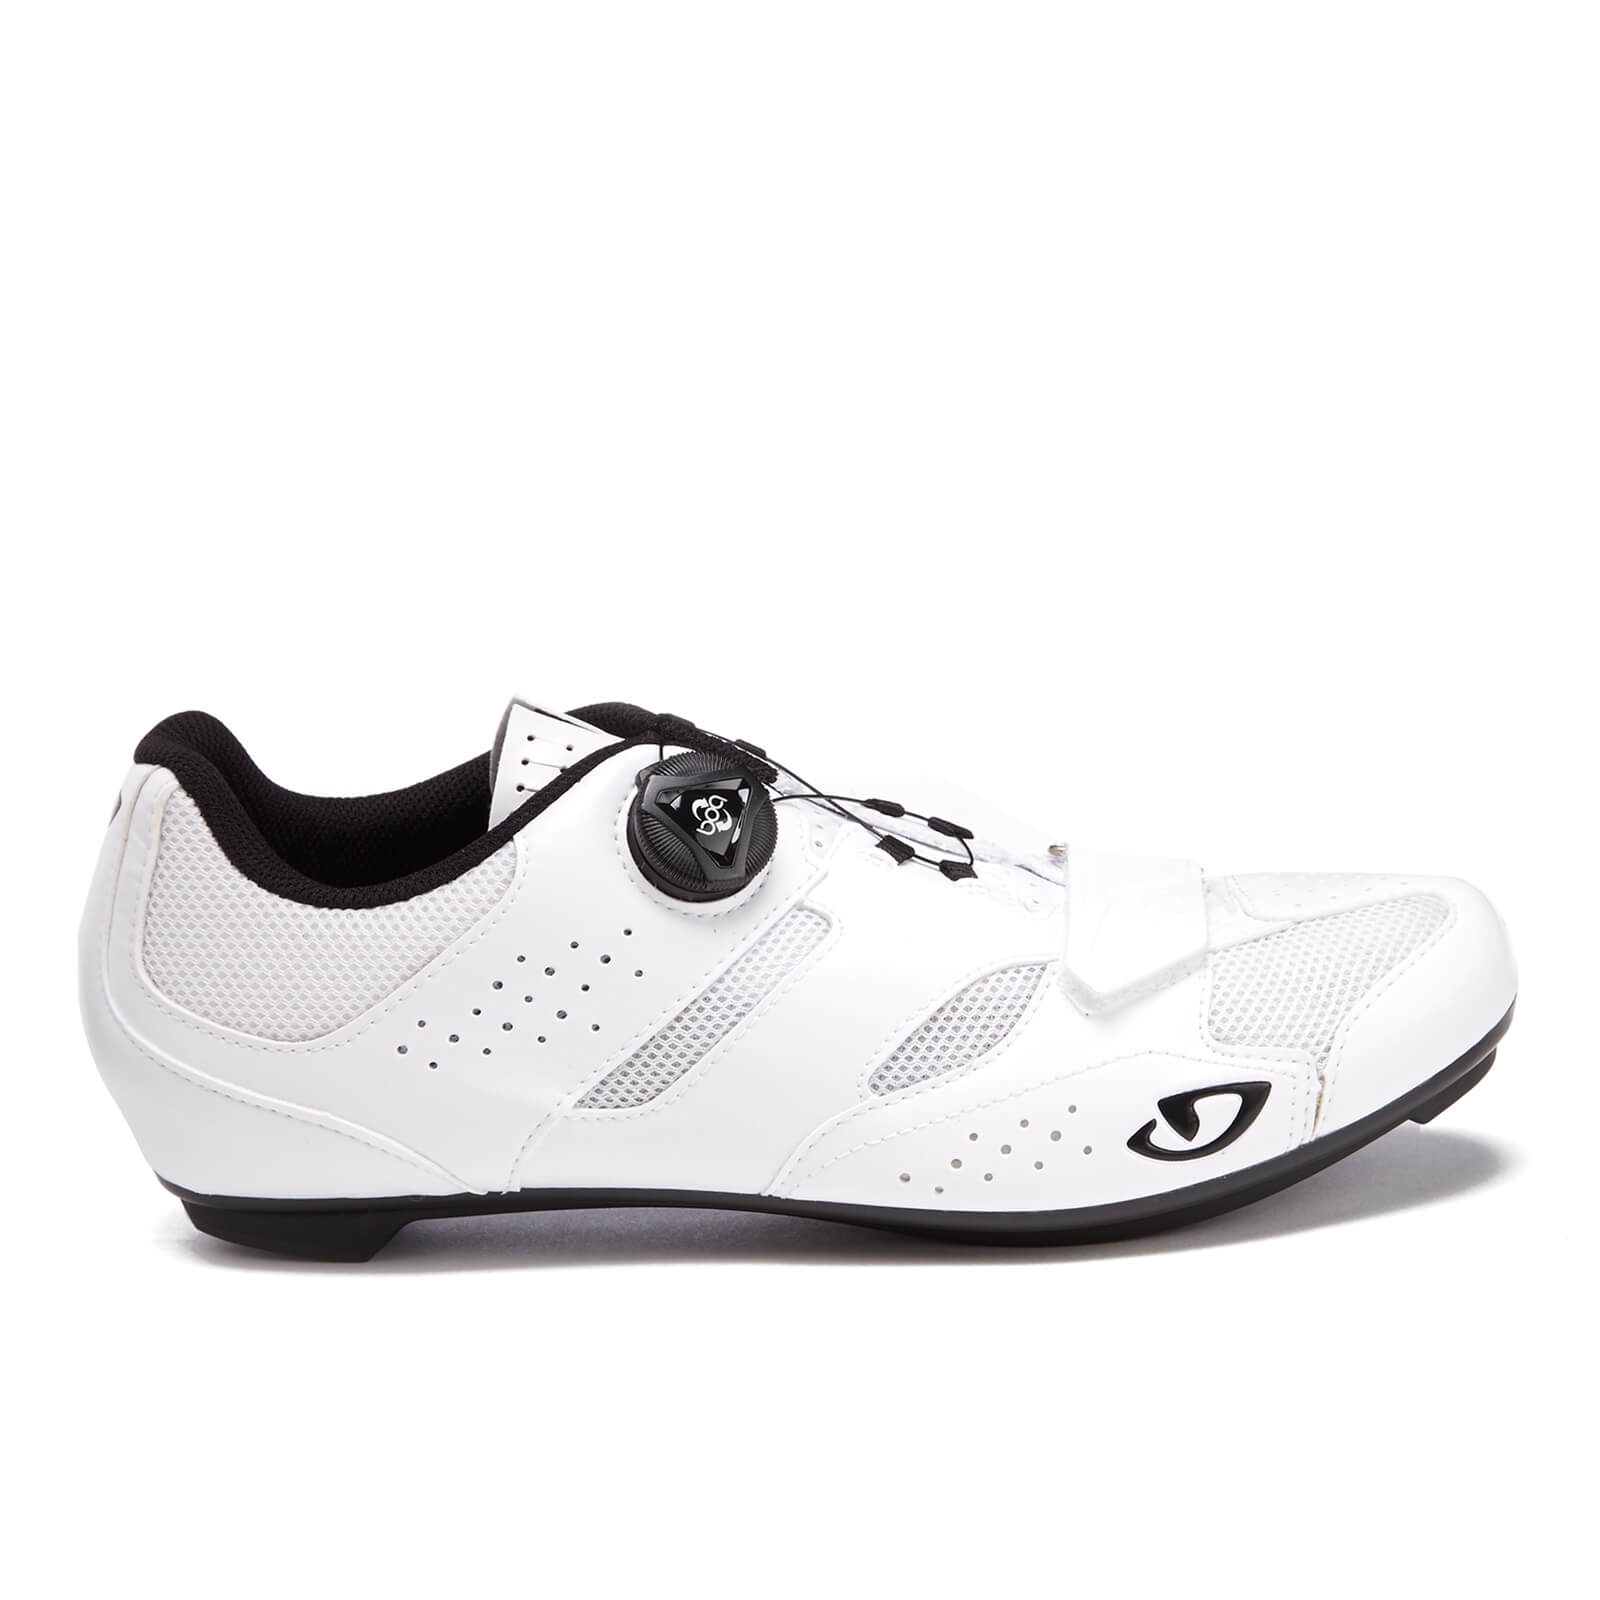 6c04819c4ca Giro Savix Road Cycling Shoes - White